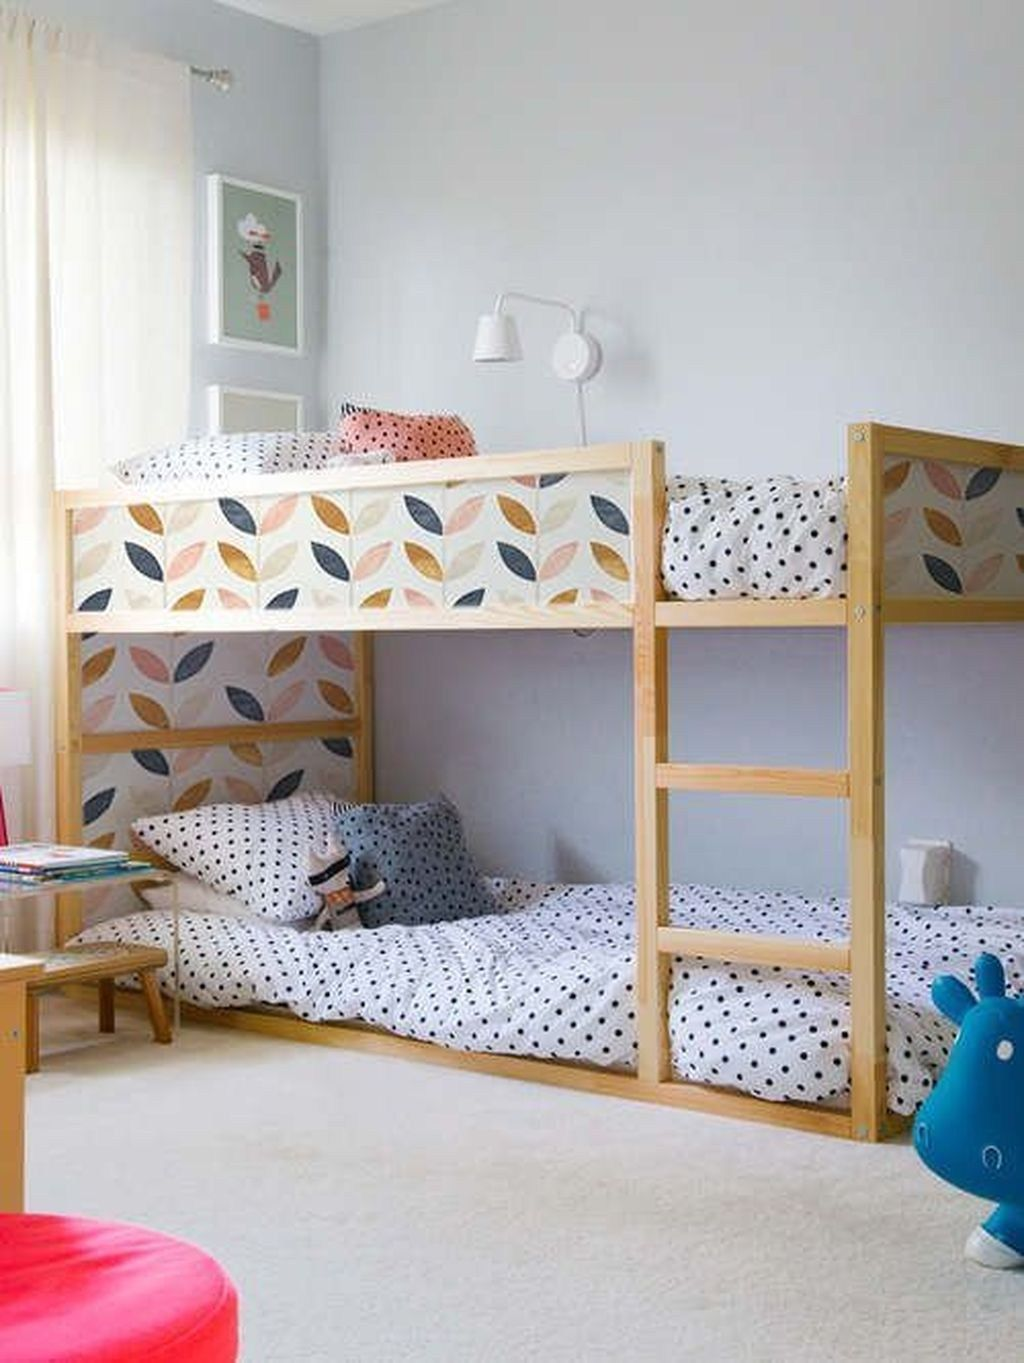 Cool Ikea Kura Beds Ideas For Your Kids Room11 Kura Bed Kiz